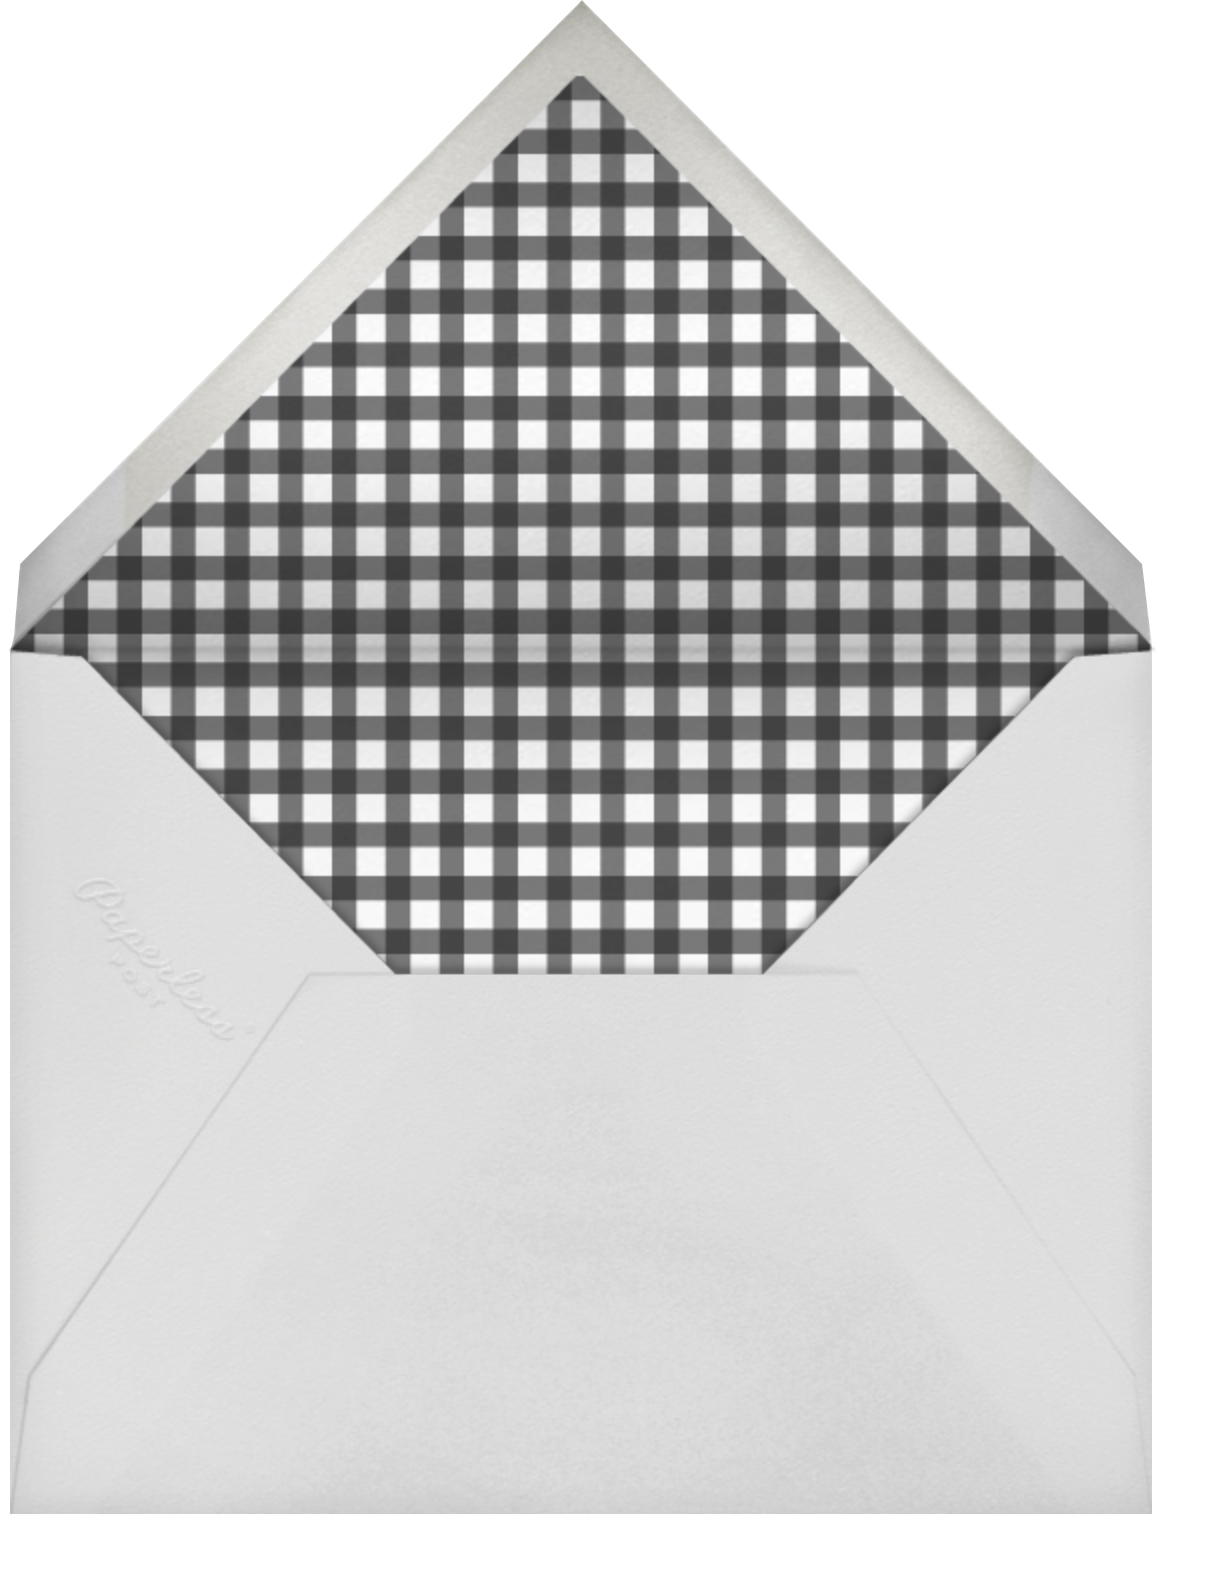 Quadrata - Silver - Paperless Post - Holiday cards - envelope back